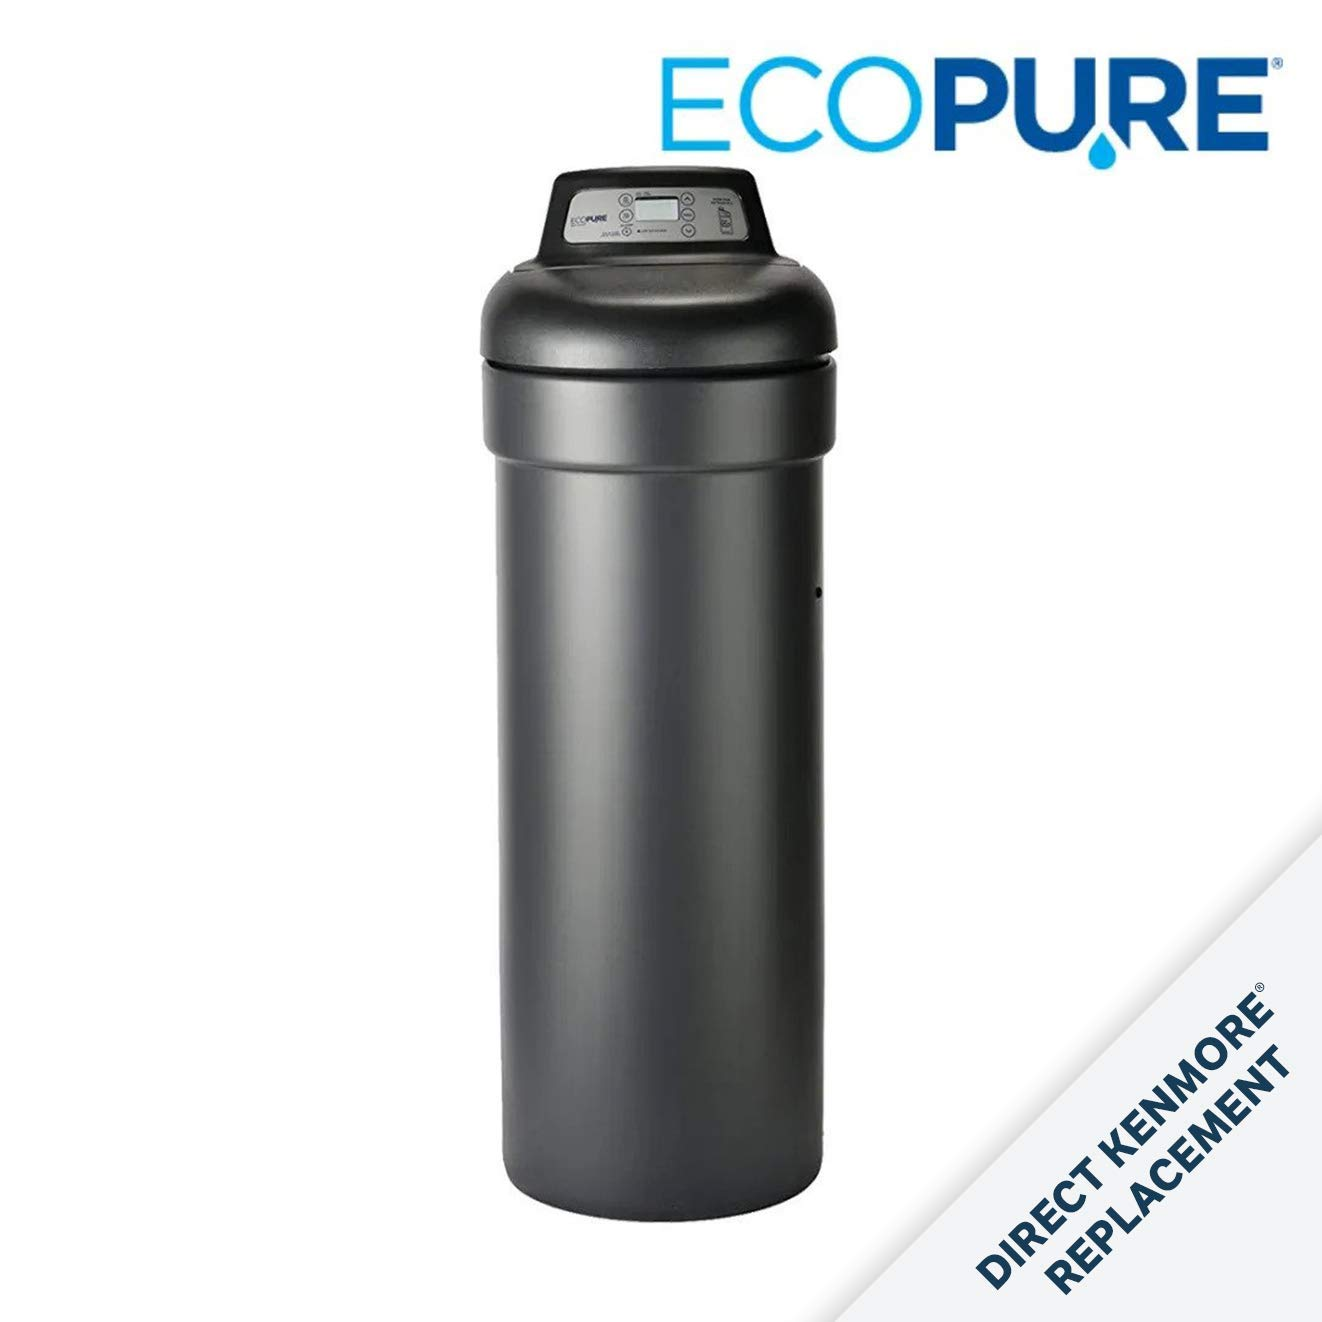 EcoPure EPHS Conditioner, Water Softener & Filtration System Hybrid, ecopure water softener, ecopure inline water filter, ecopure water softener reviews